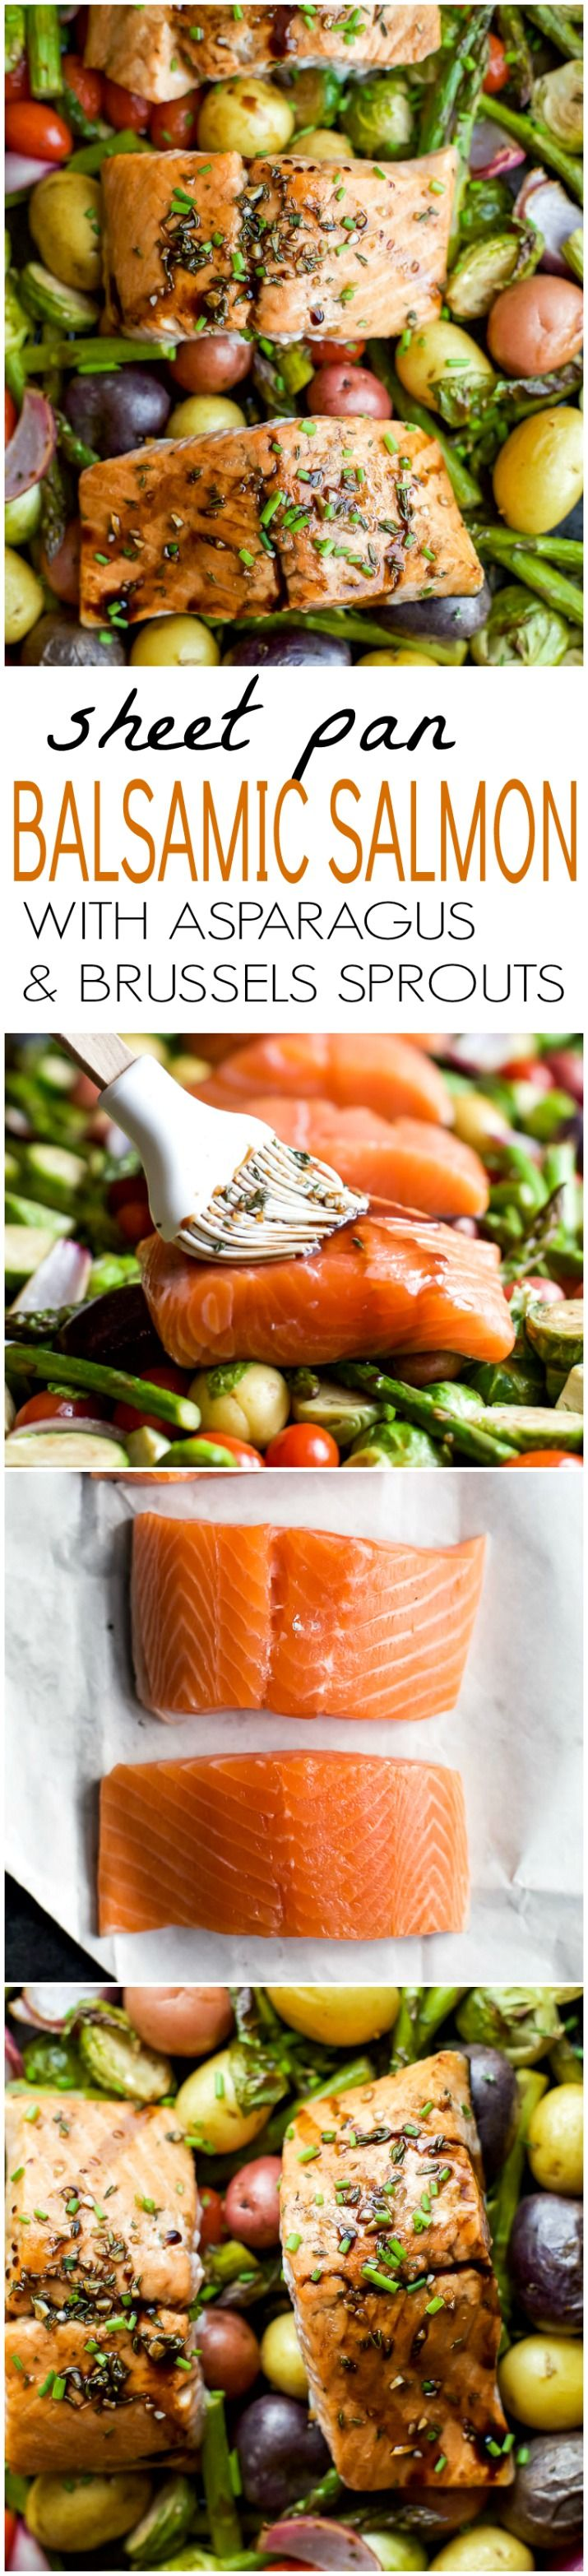 Sheet Pan Balsamic Salmon on a bed of potatoes, asparagus, and brussels sprouts! An easy healthy meal done in 30 minutes and full of bold flavors you'll love! | joyfulhealthyeats.com #paleo #glutenfree